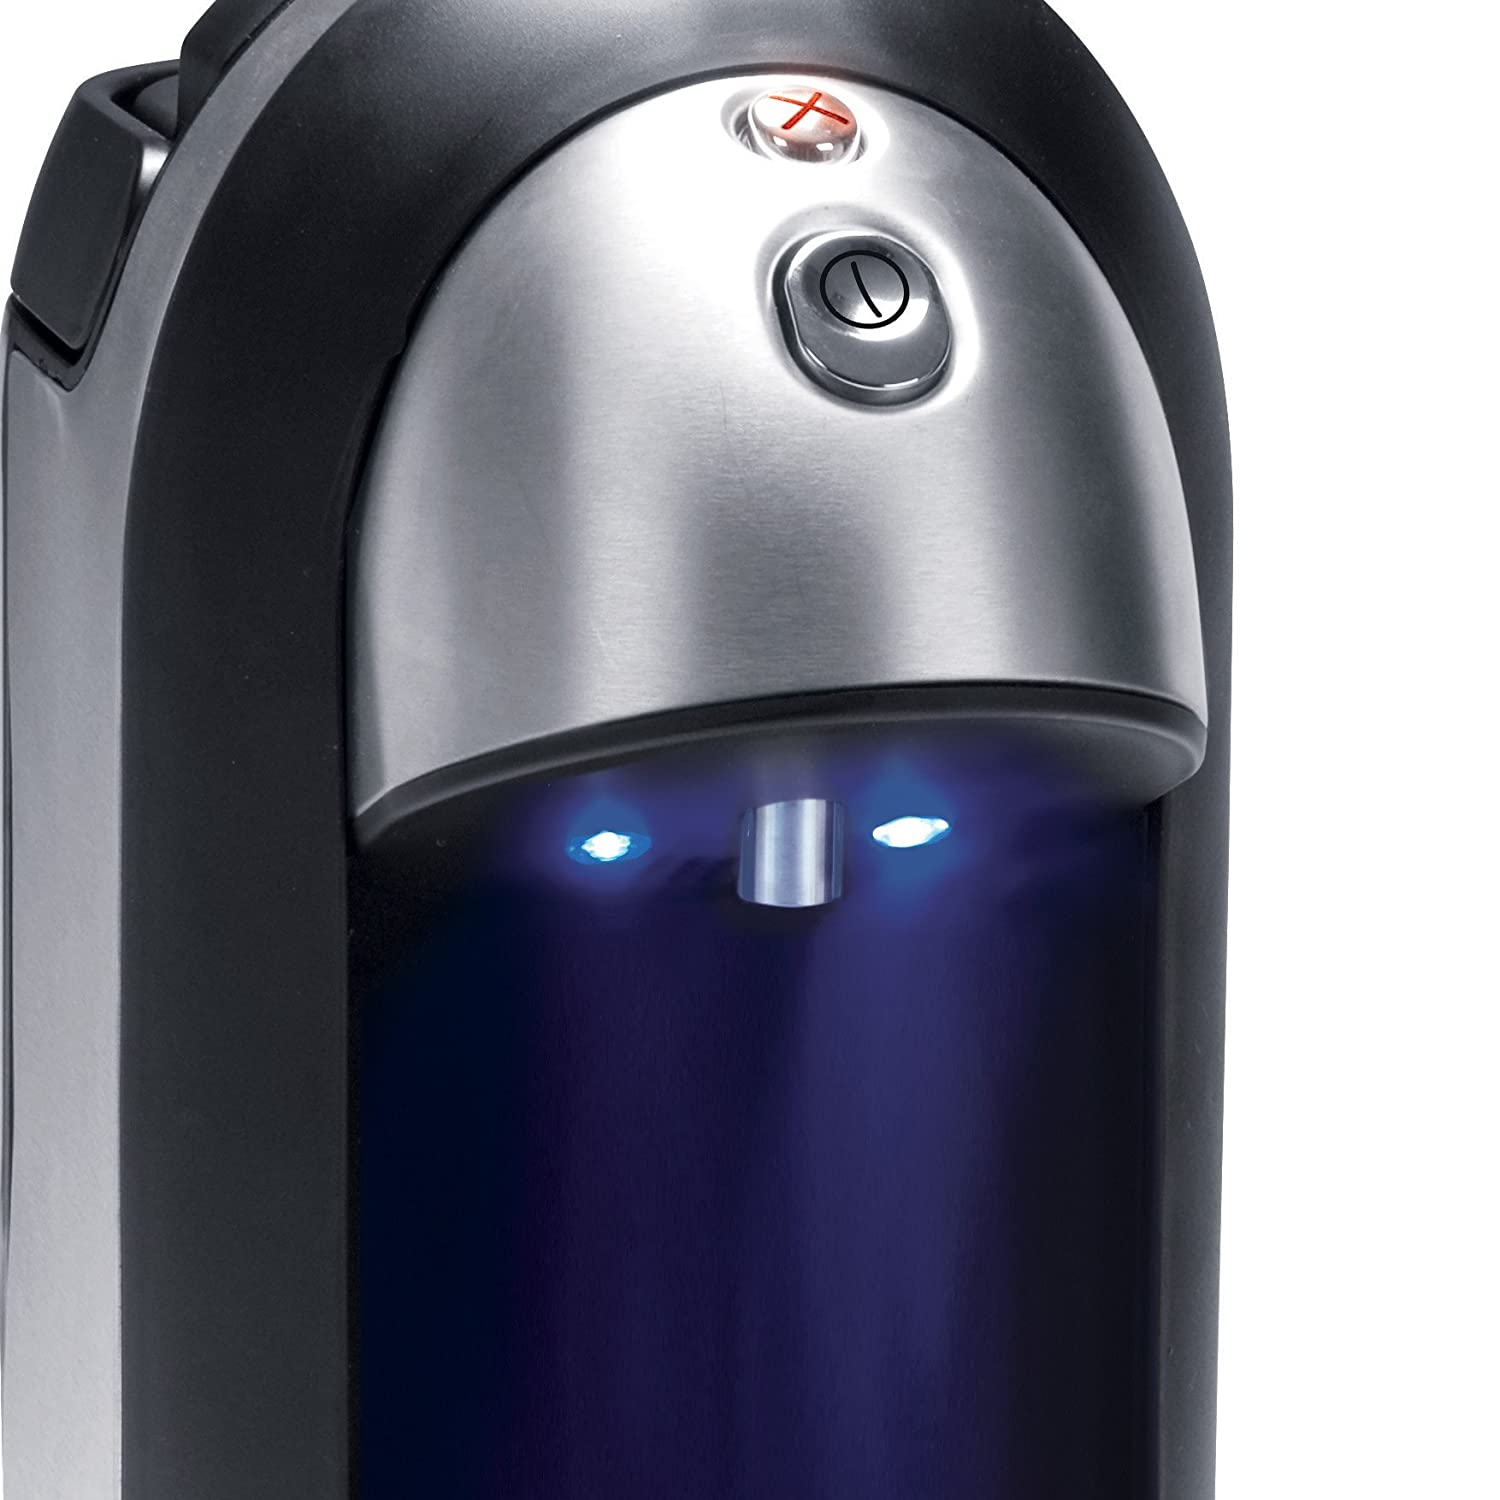 Morphy Richards 43922 Accents Hot Water Dispenser - Black Nmorphy Richards Small_Appliances Toasters boils water in 45 seconds